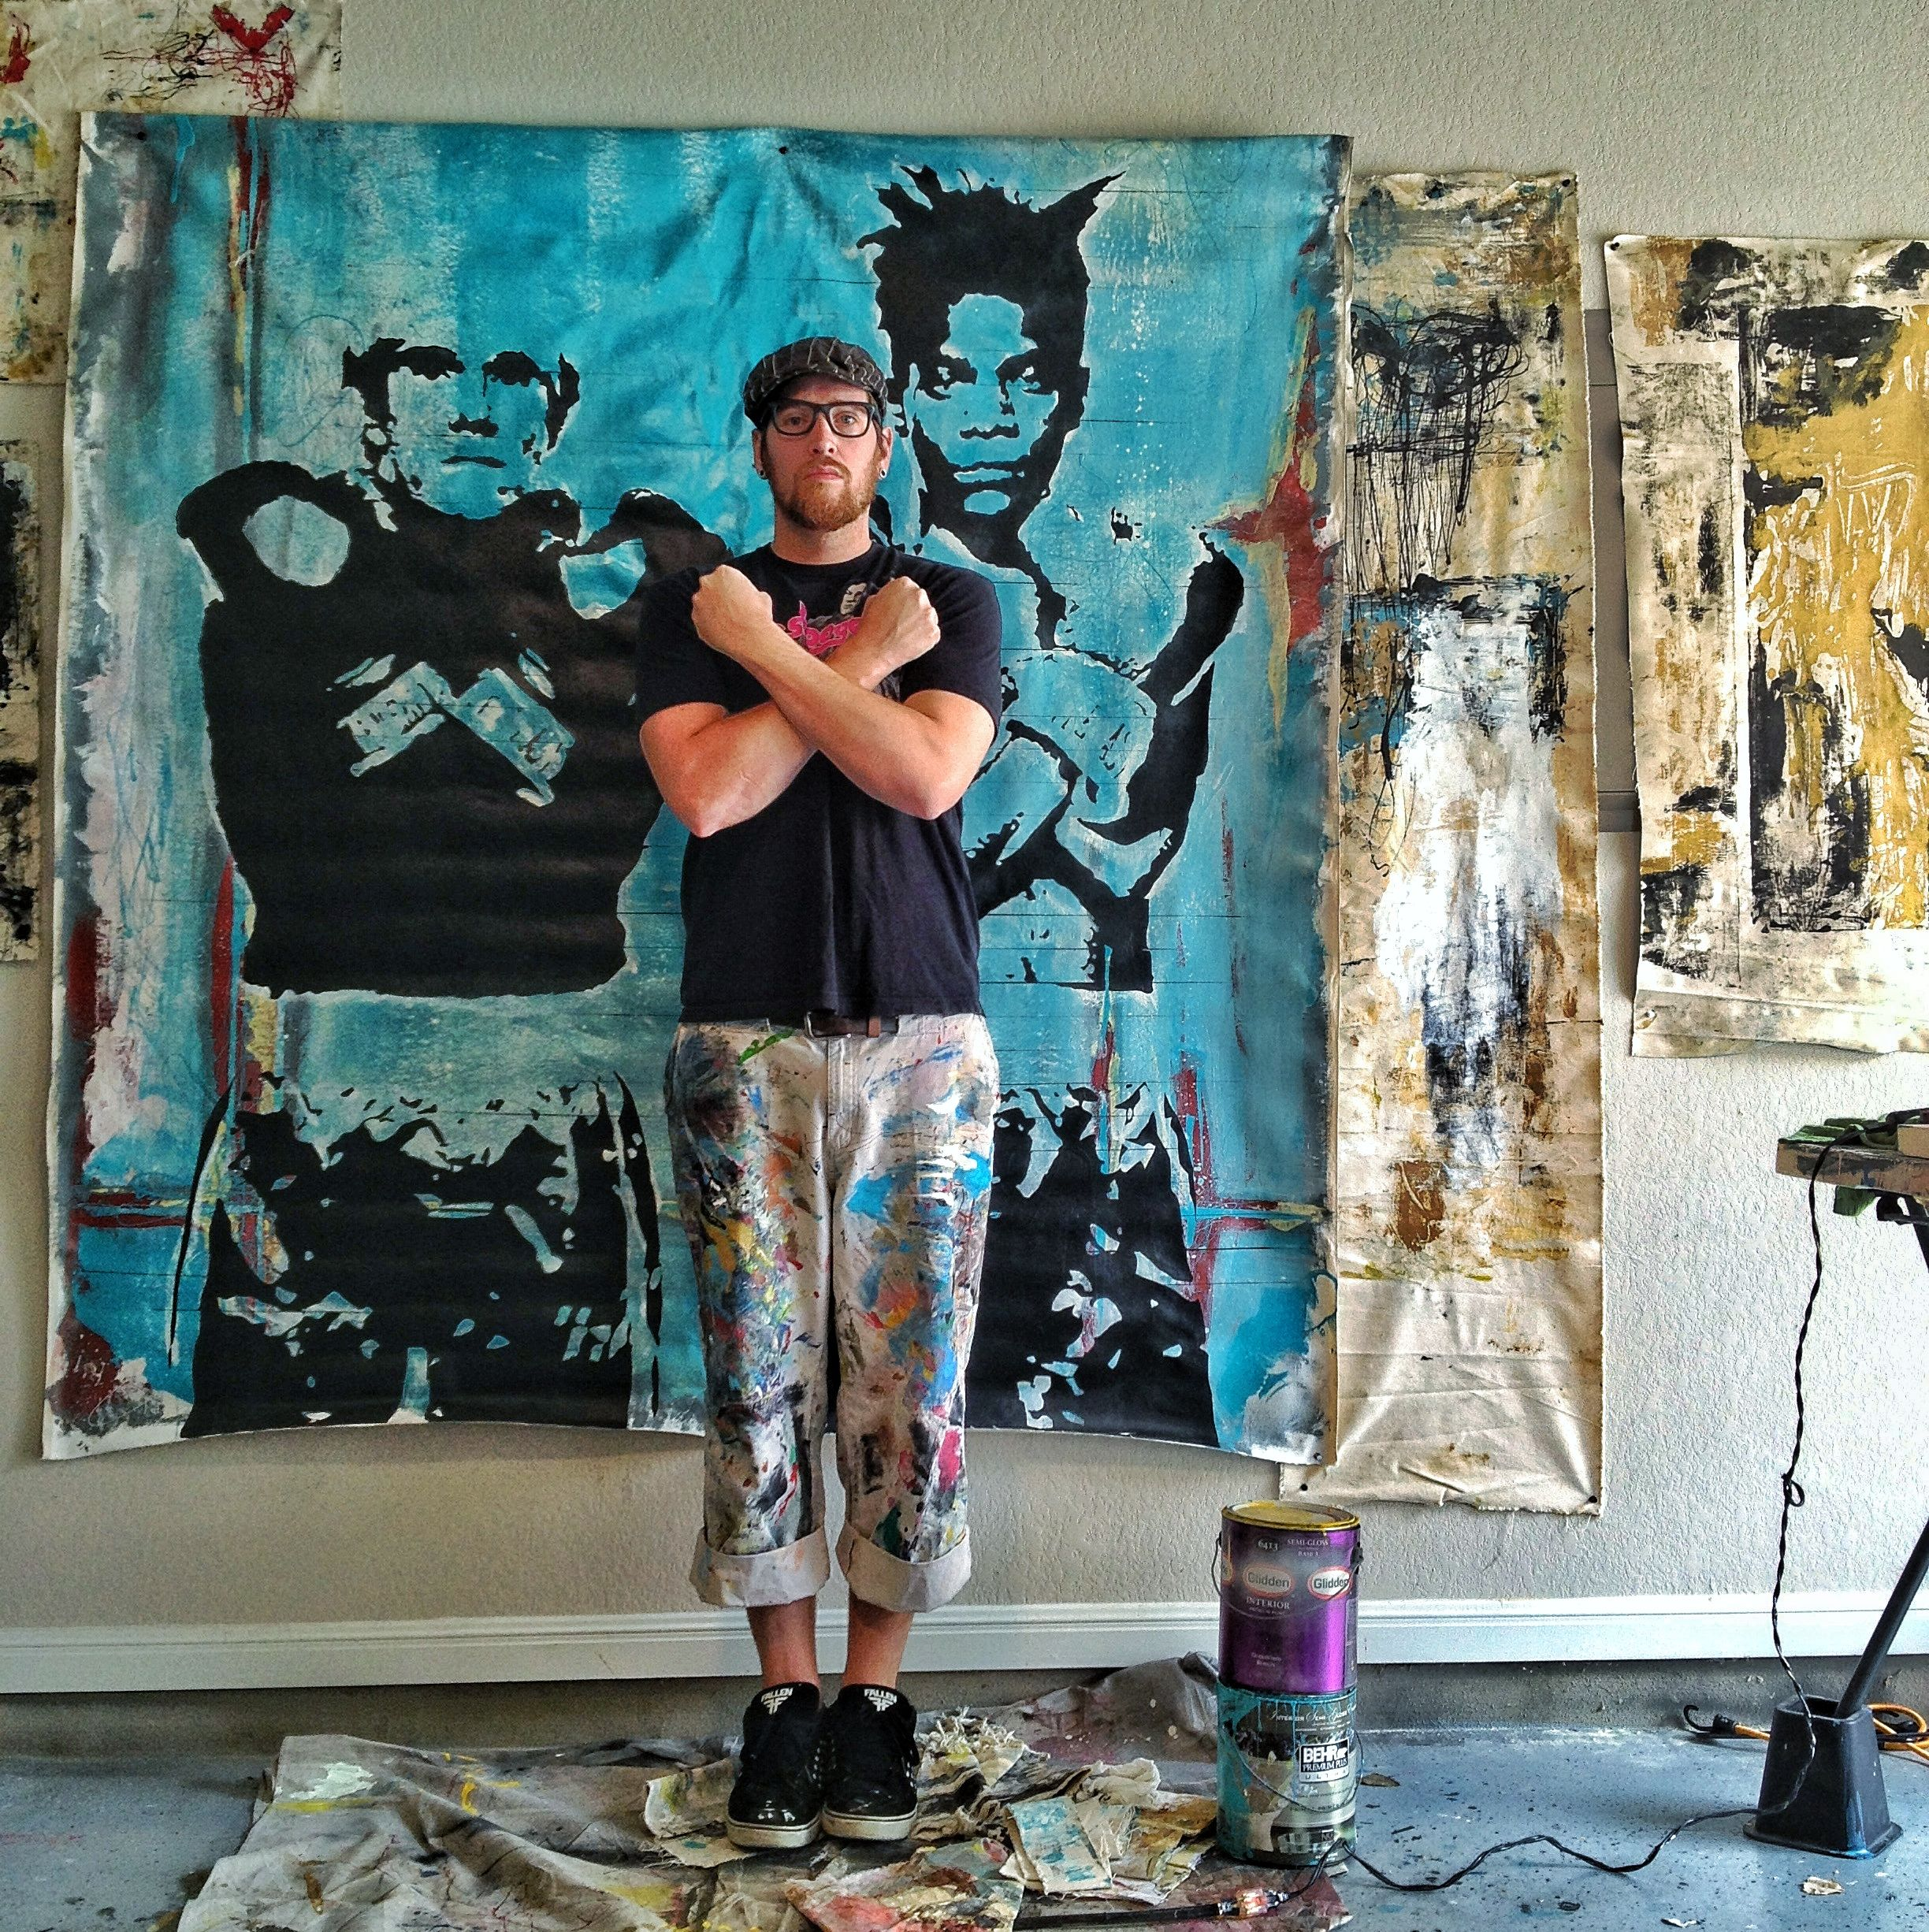 Me in my studio, getting ready to paint with a little help from Andy and Jean Michel. #basquiat #andywarhol #art #artsudio